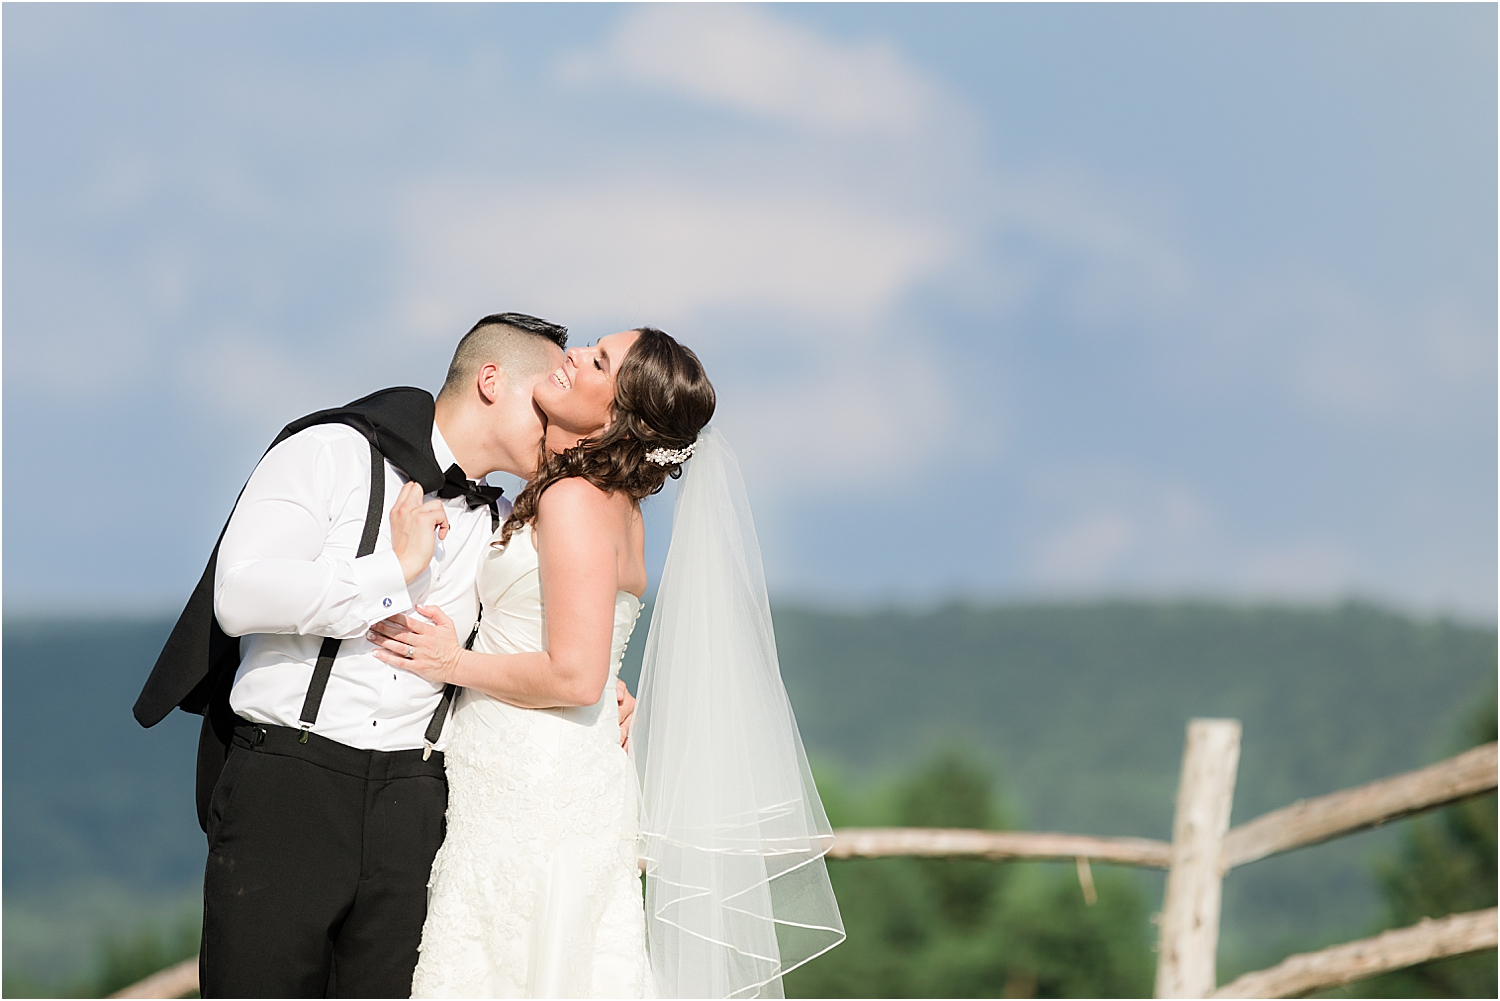 scenic wedding photo of bride and groom at Skyview Golf Club